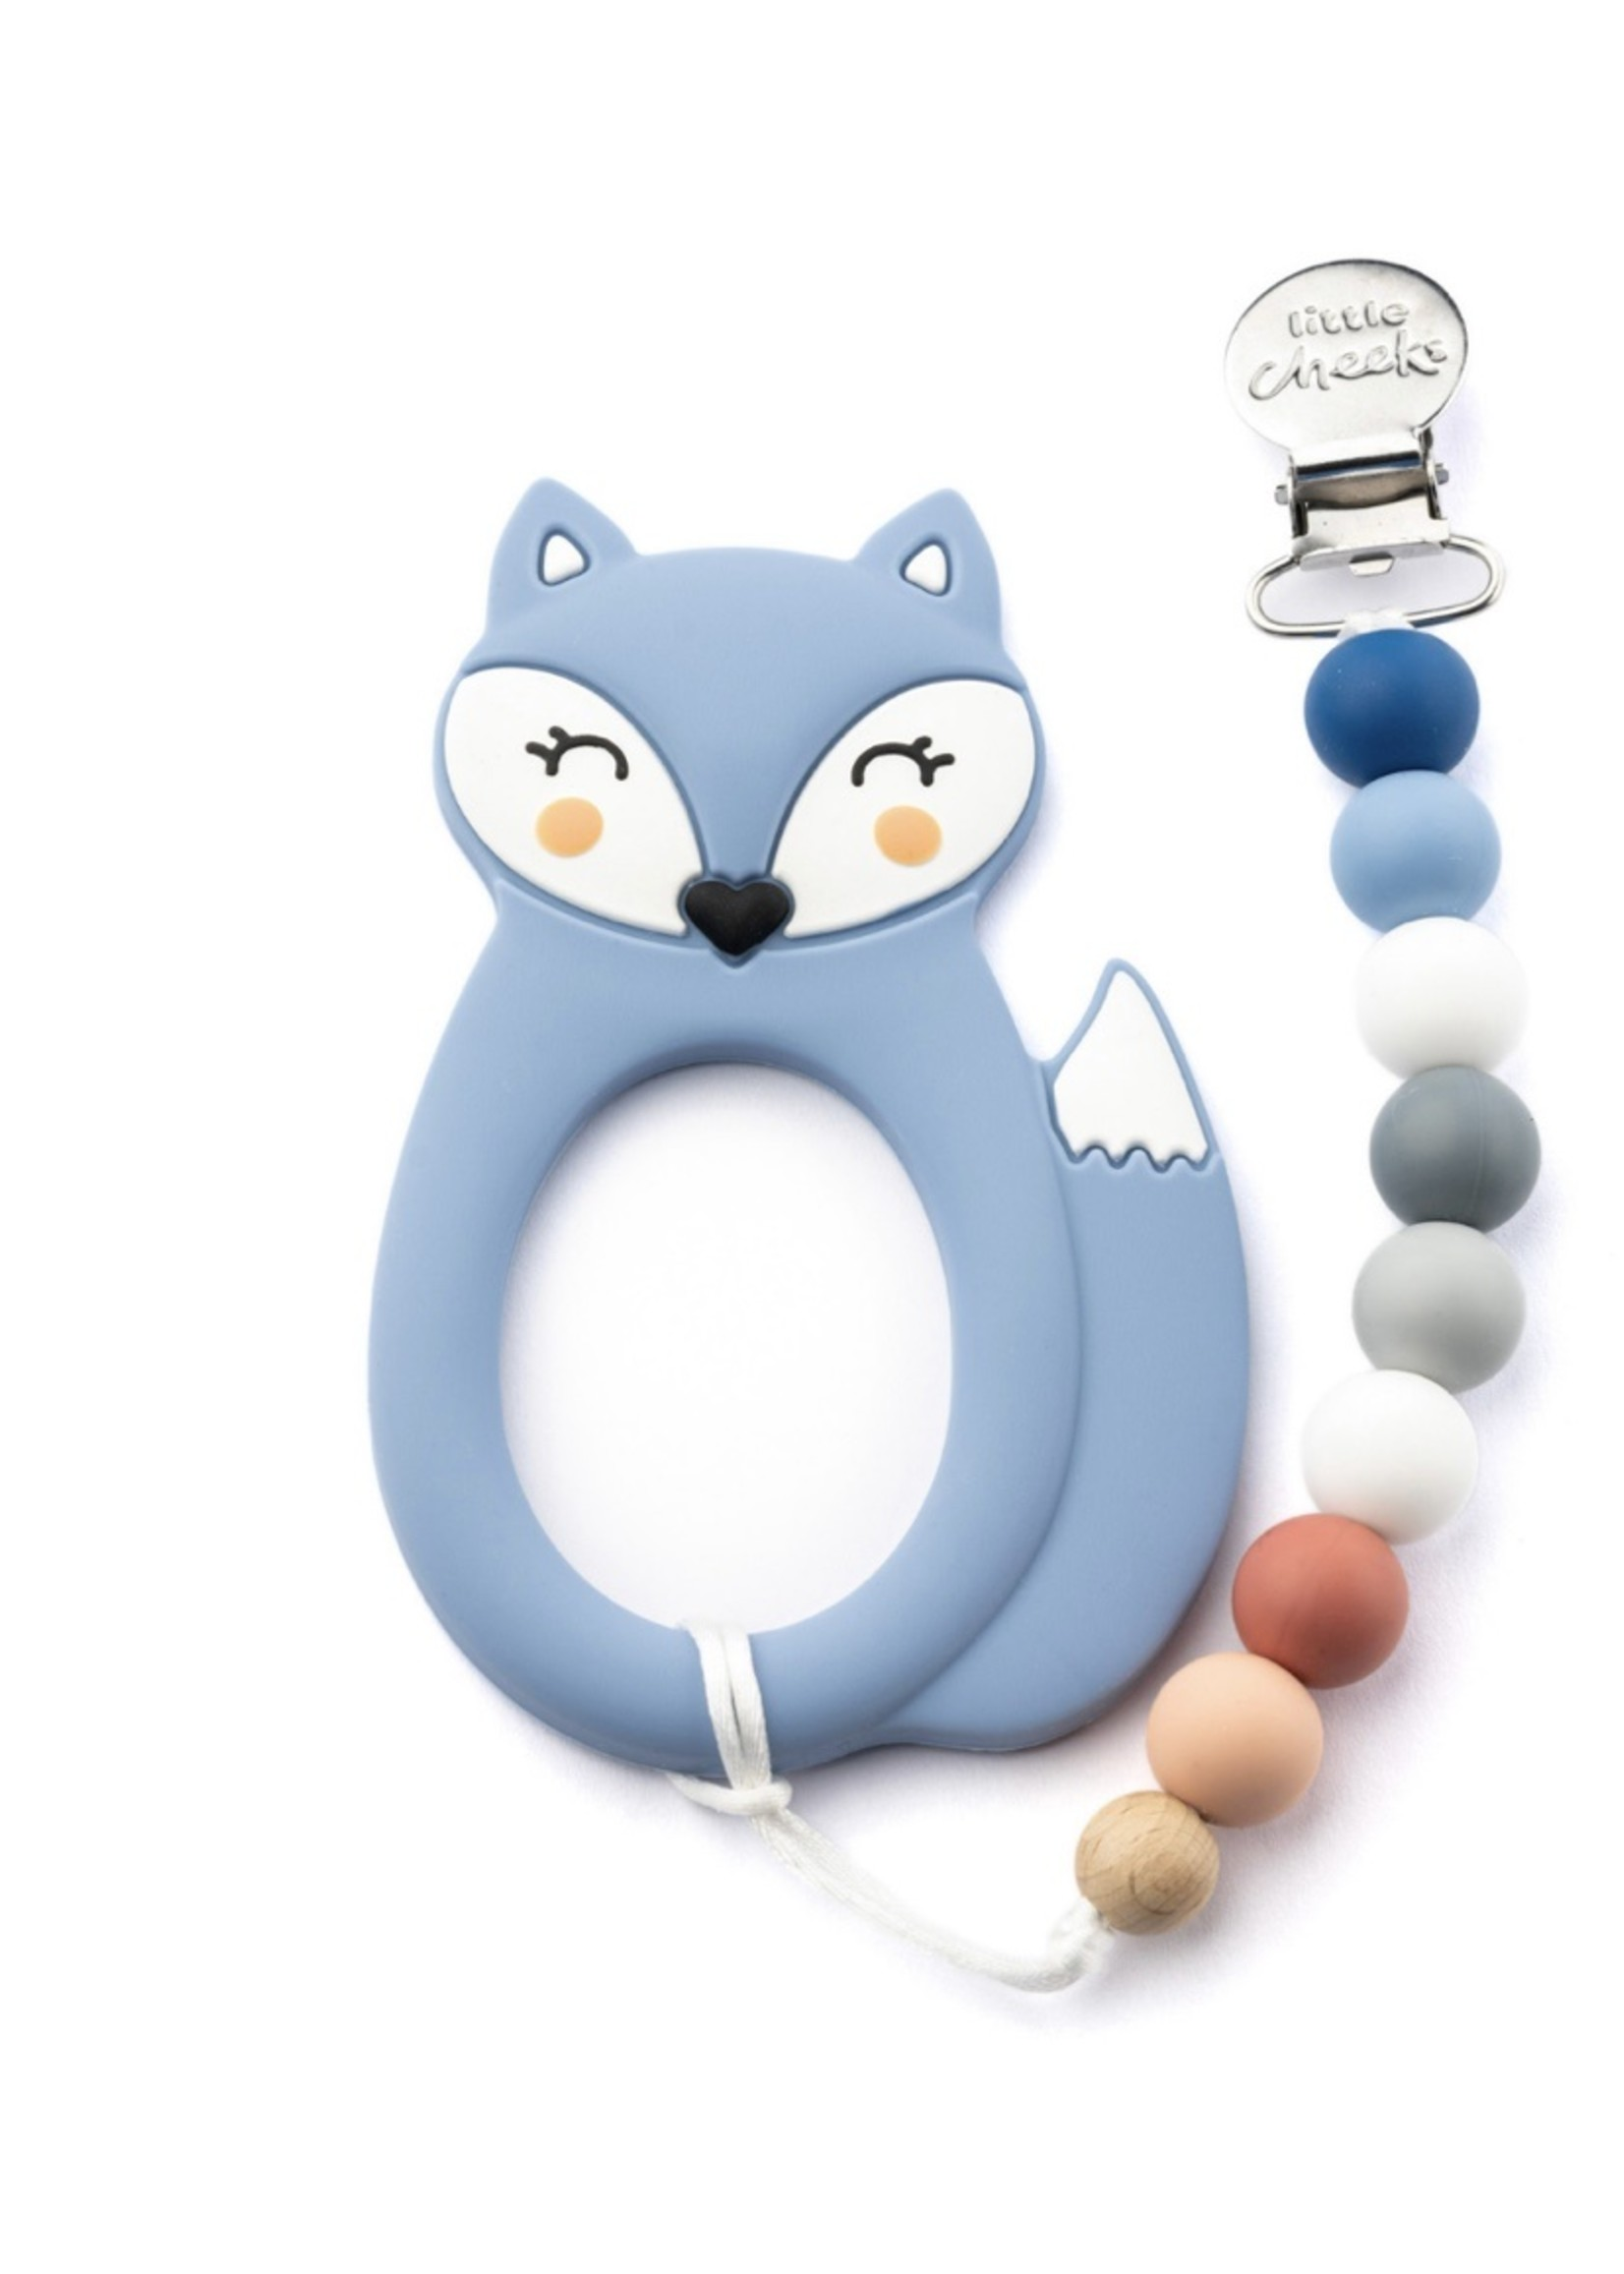 LITTLE CHEEKS LITTLE CHEEKS Blue Fox TEETHER & CLIP